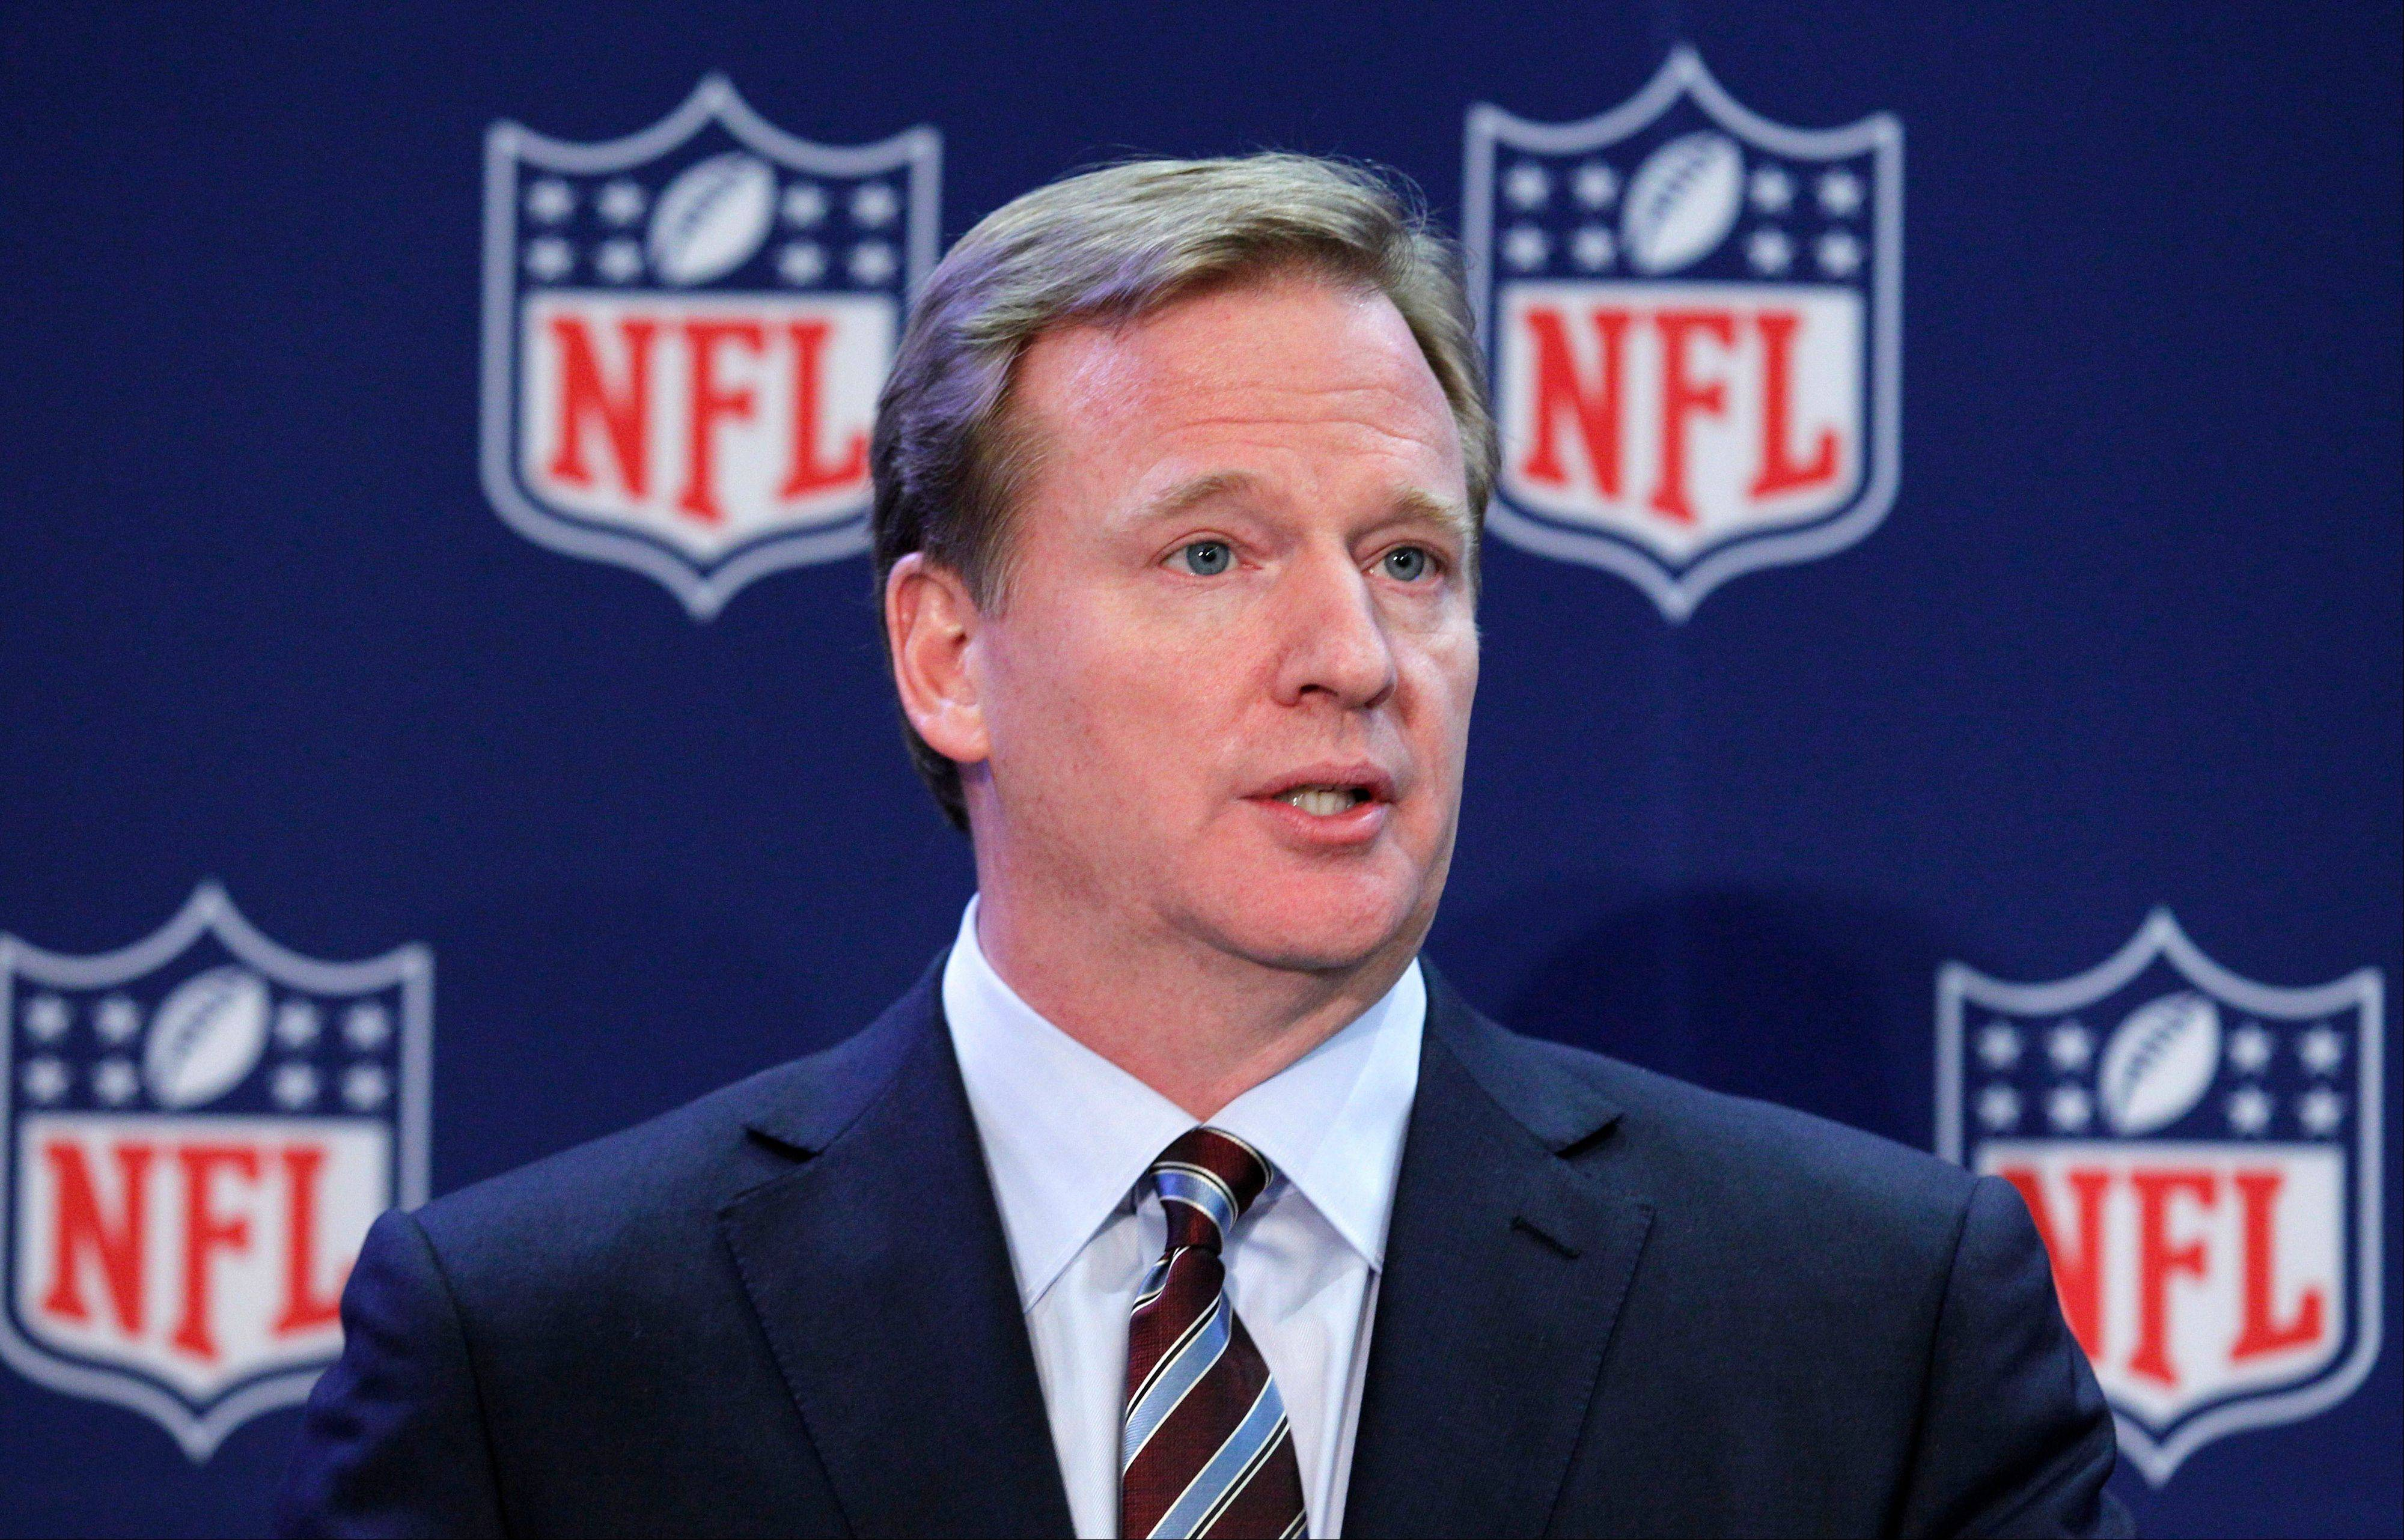 NFL Commissioner Roger Goodell said this week he �fundamentally disagrees� with former league boss Paul Tagliabue�s decision not to discipline players in the New Orleans Saints bounty scandal.